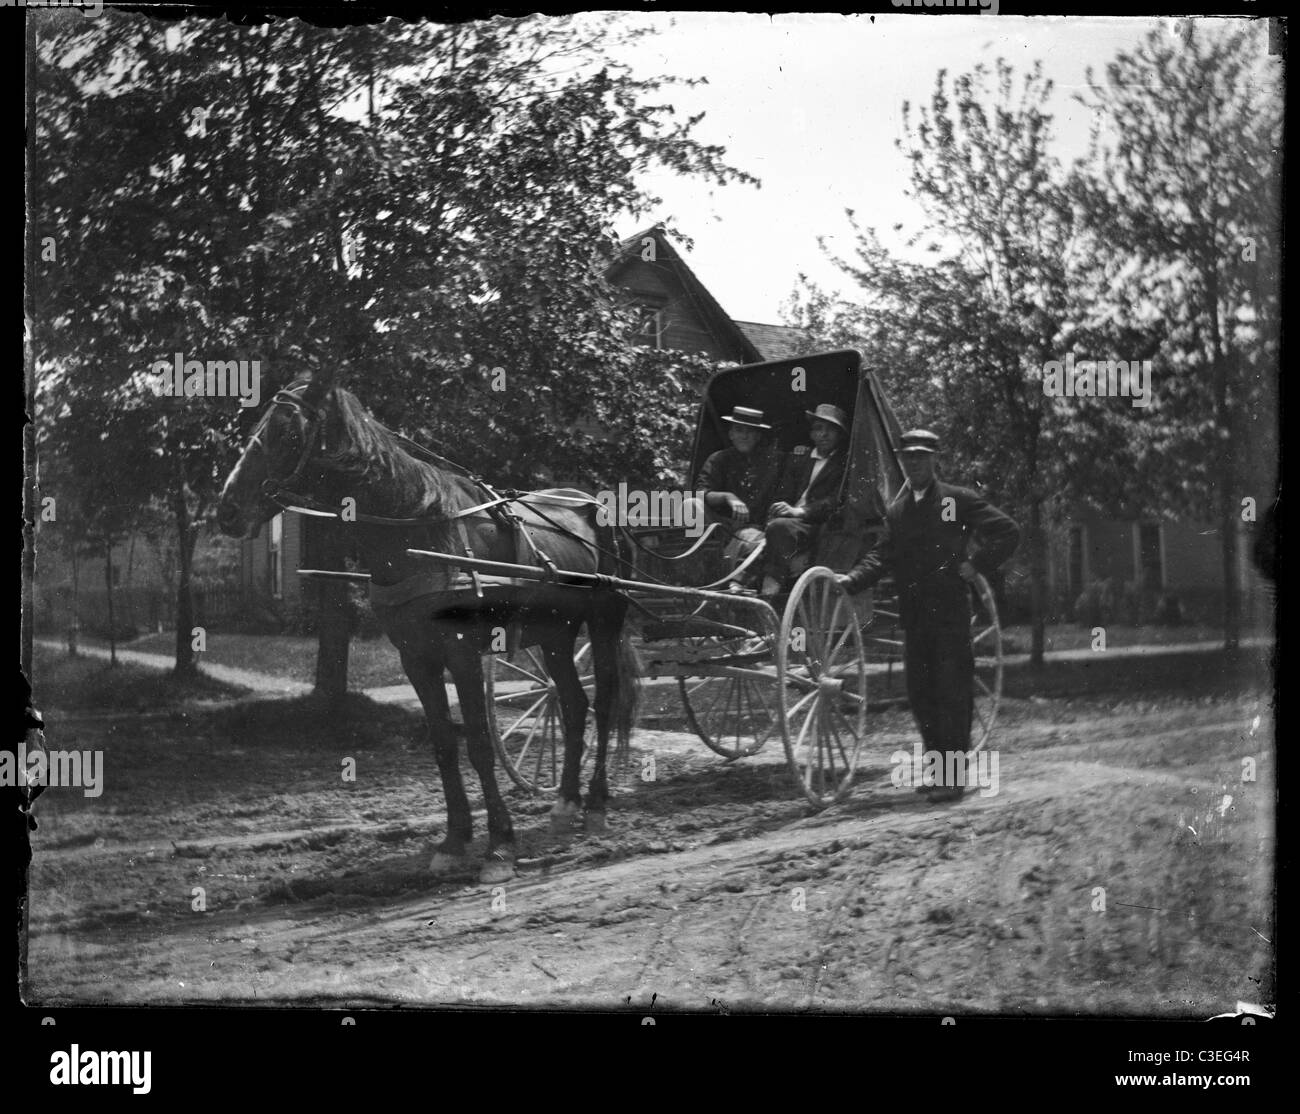 two men sitting in a horse and buggy dirt street road house transportation 19th century 1890s - Stock Image